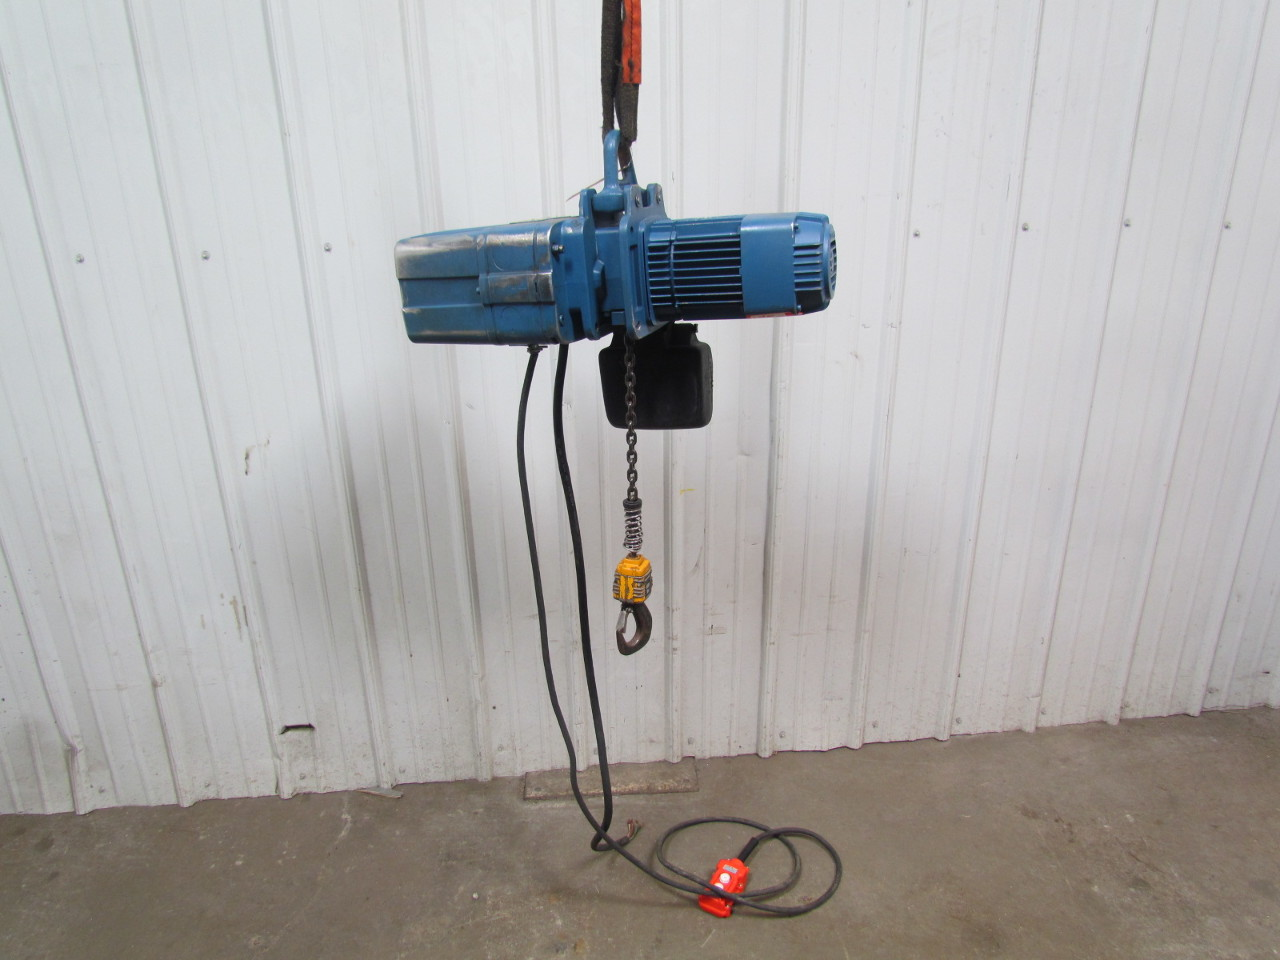 demag dkun 5 500 k v1 1 2 ton 1000 lb electric chain hoist 13 039 demag dkun 5 500 k v1 1 2 ton 1000 lb electric chain hoist